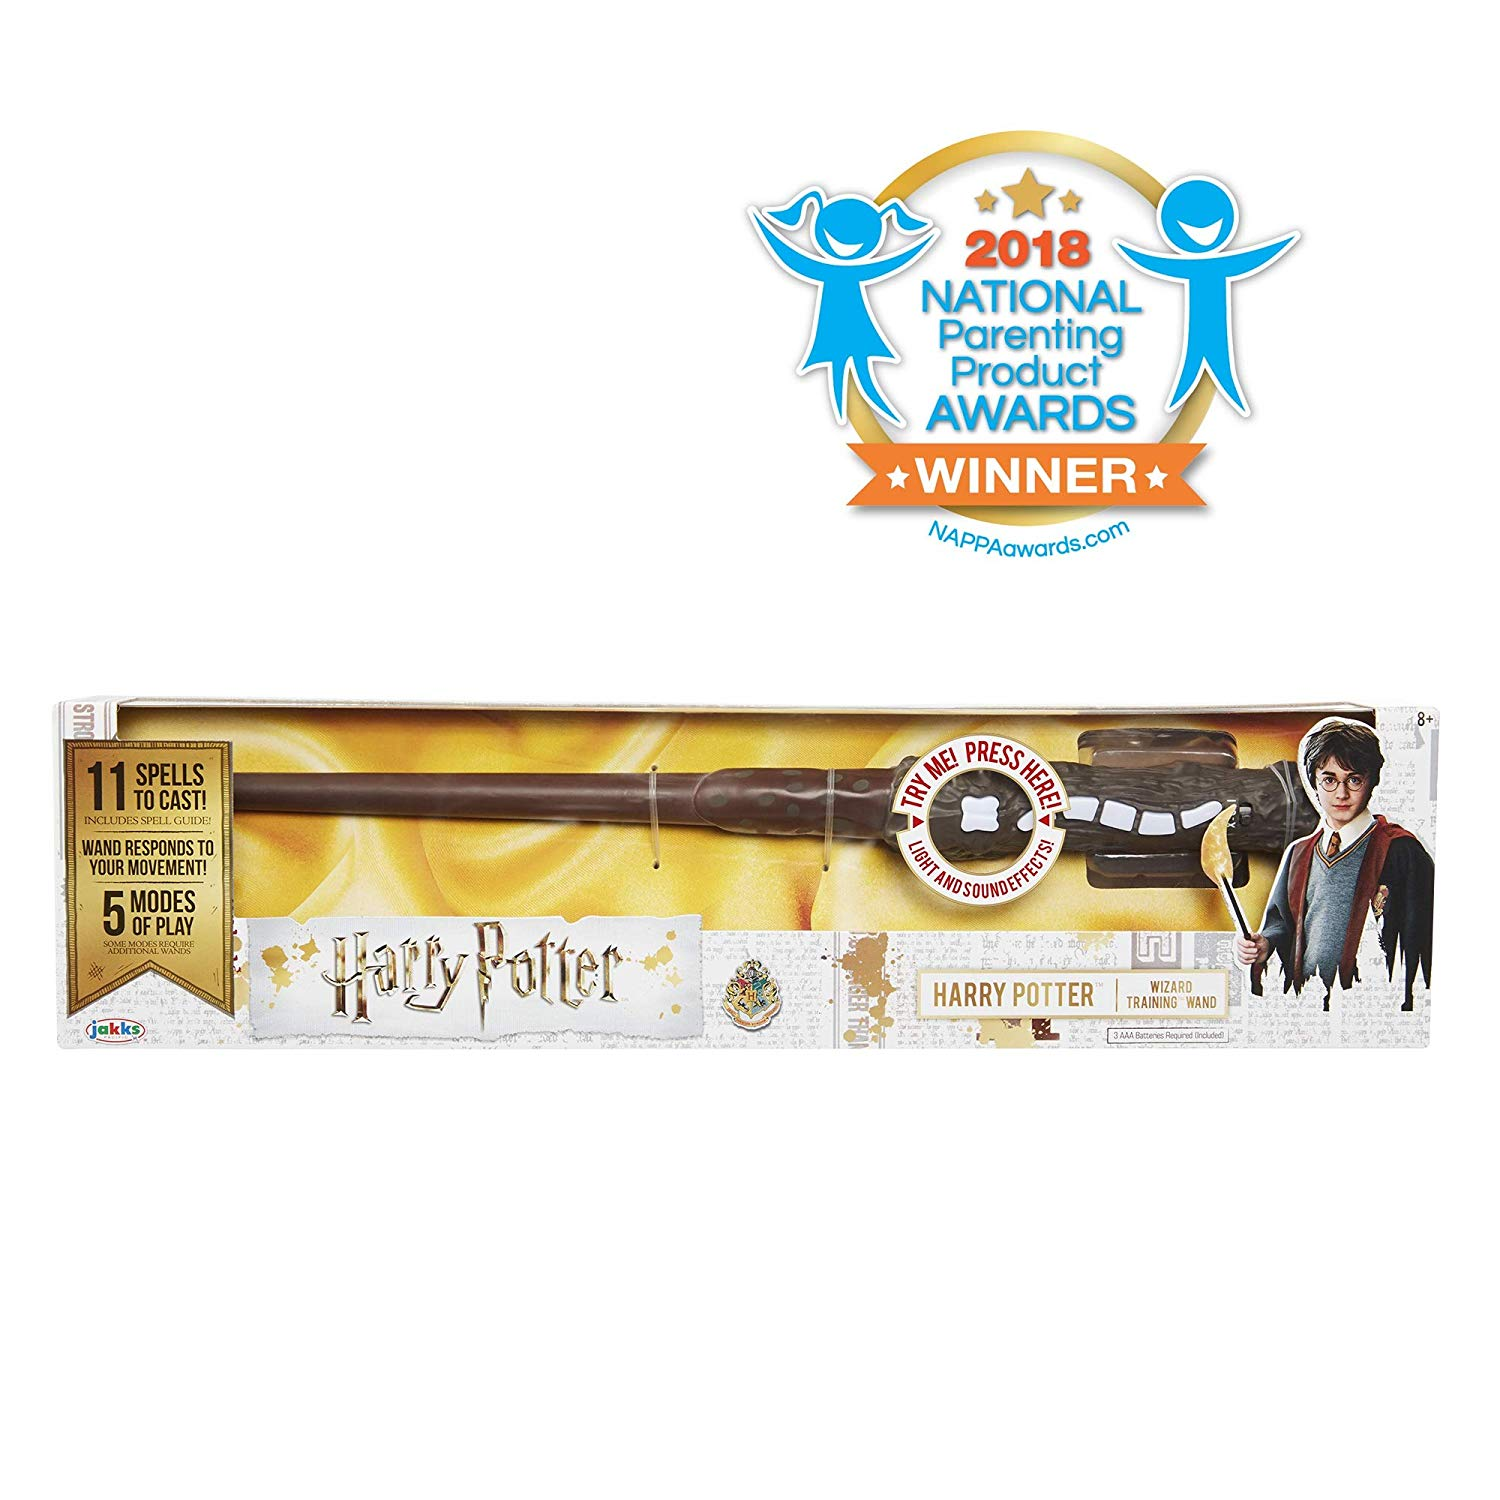 harry potter's training wand in box is one of the holiday toys we all need